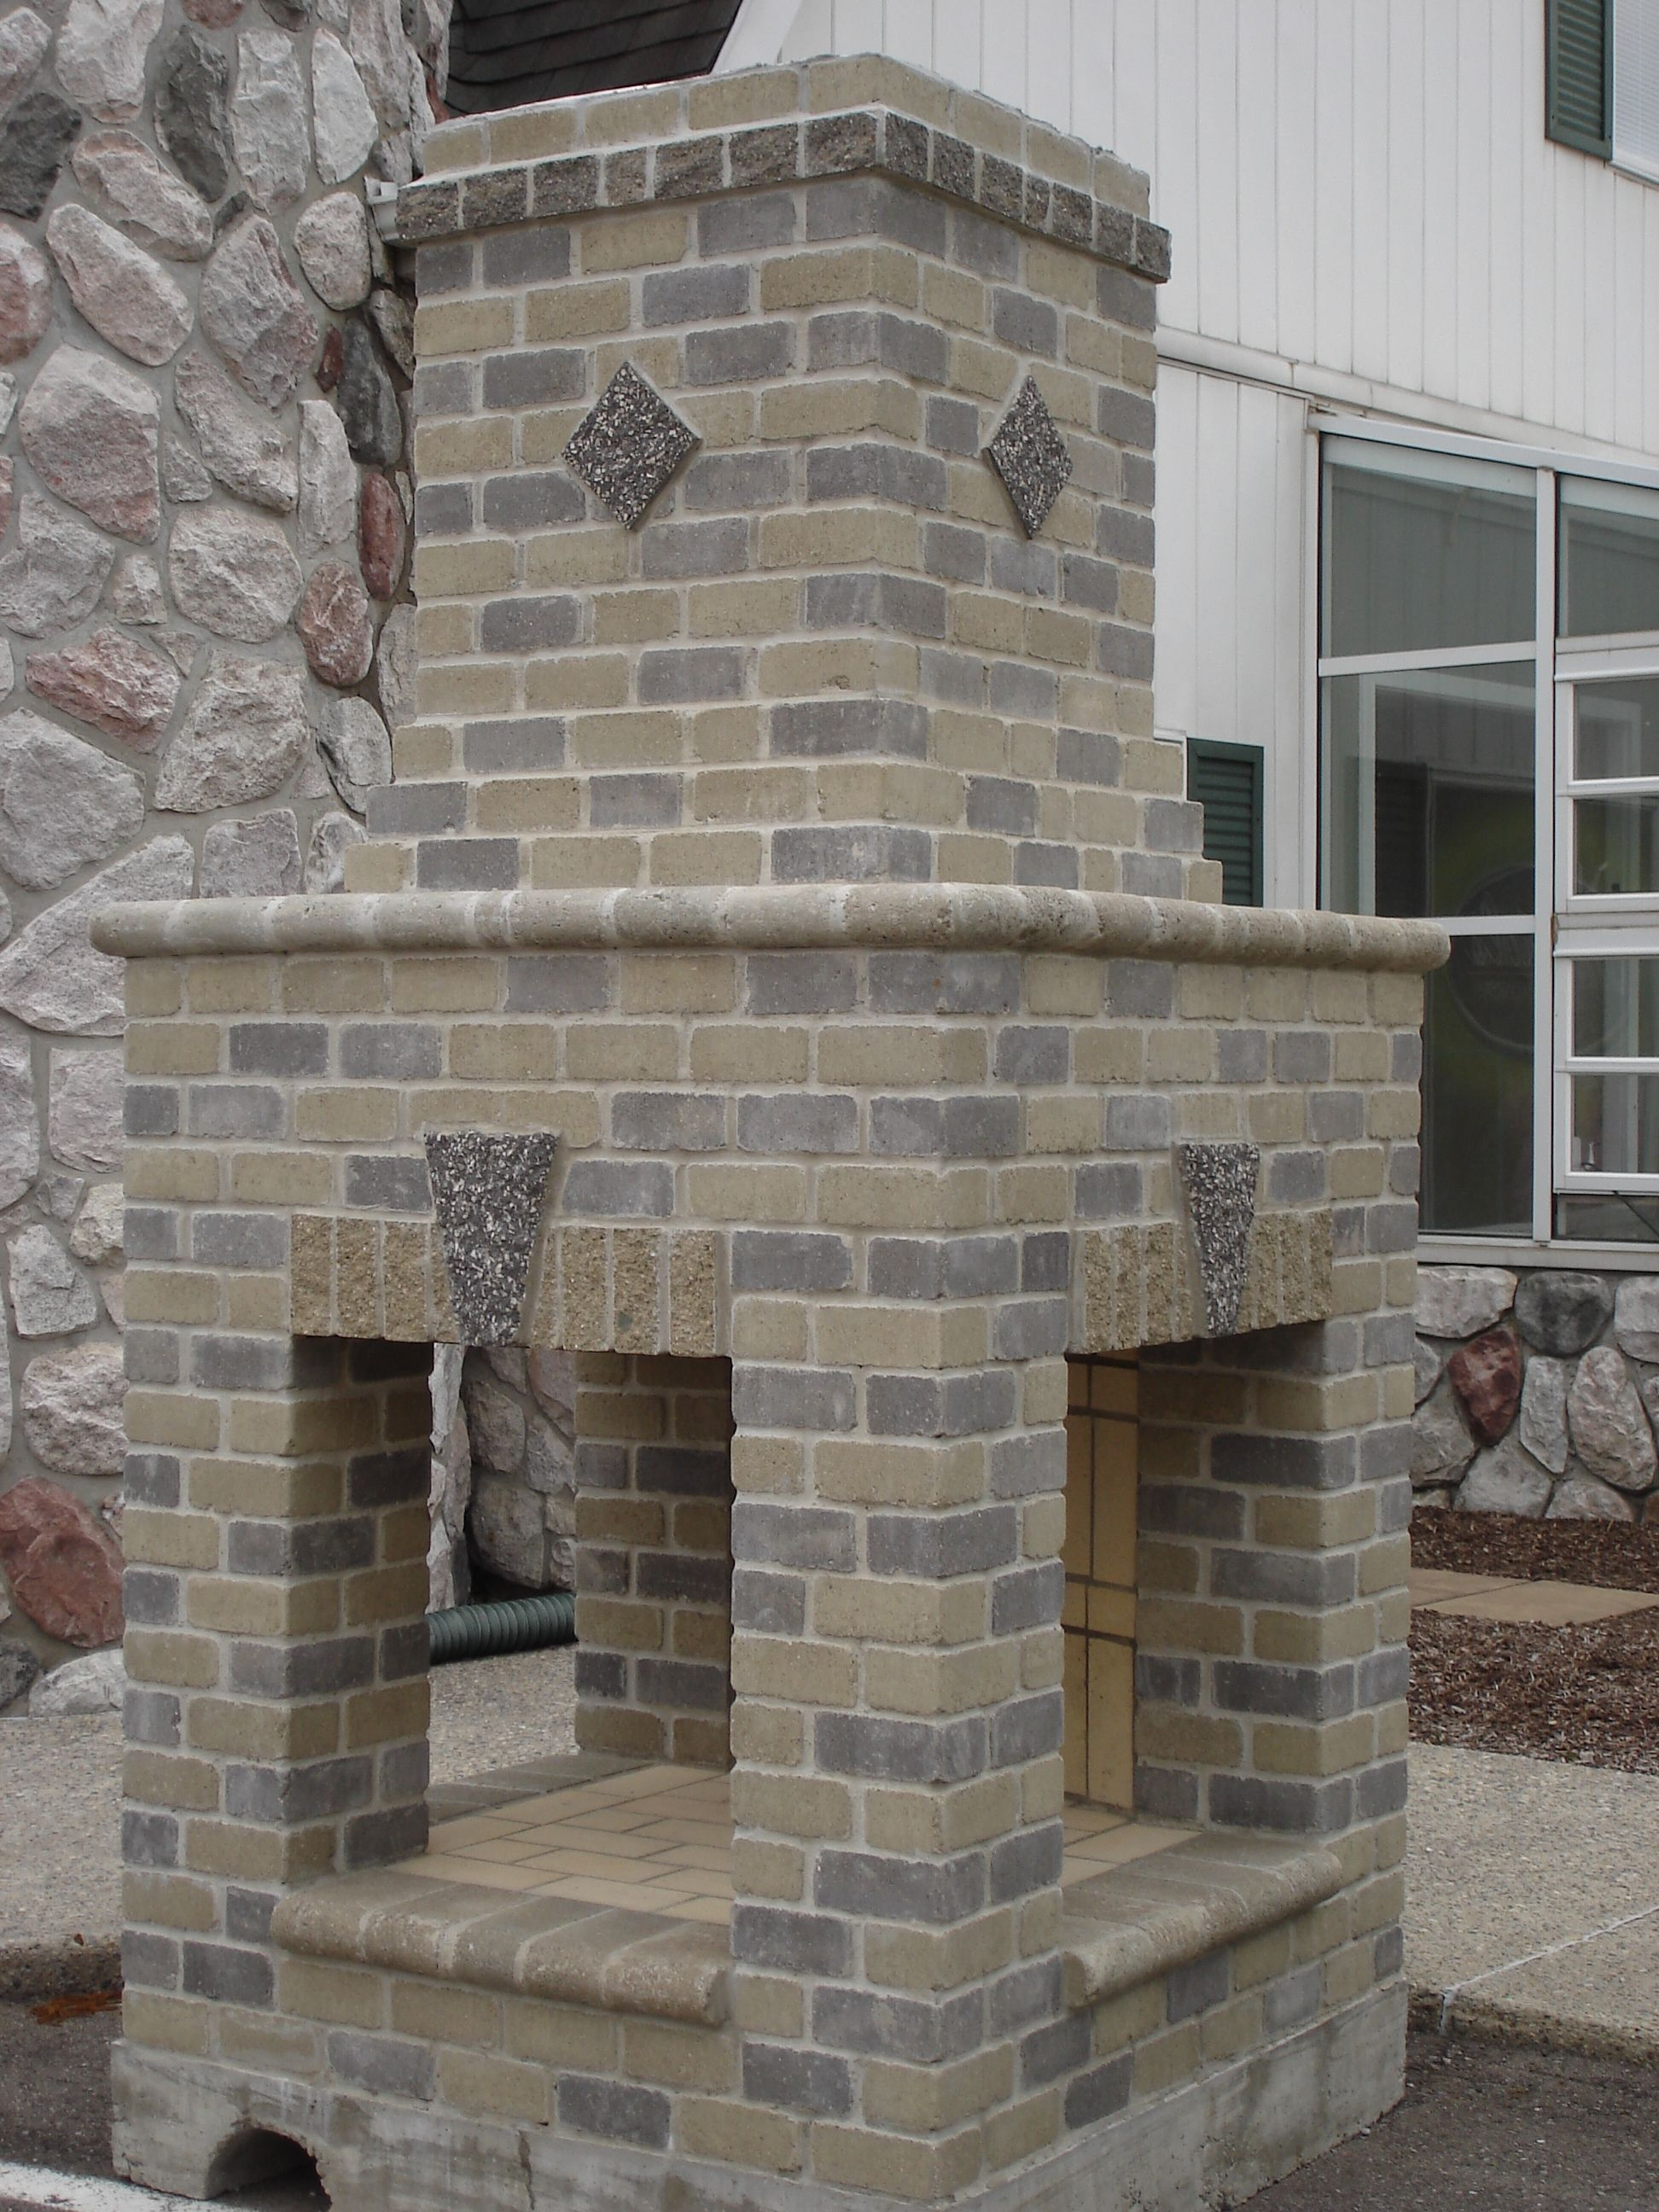 Image detail for Sided Brick and Mortar Outdoor Fireplace with